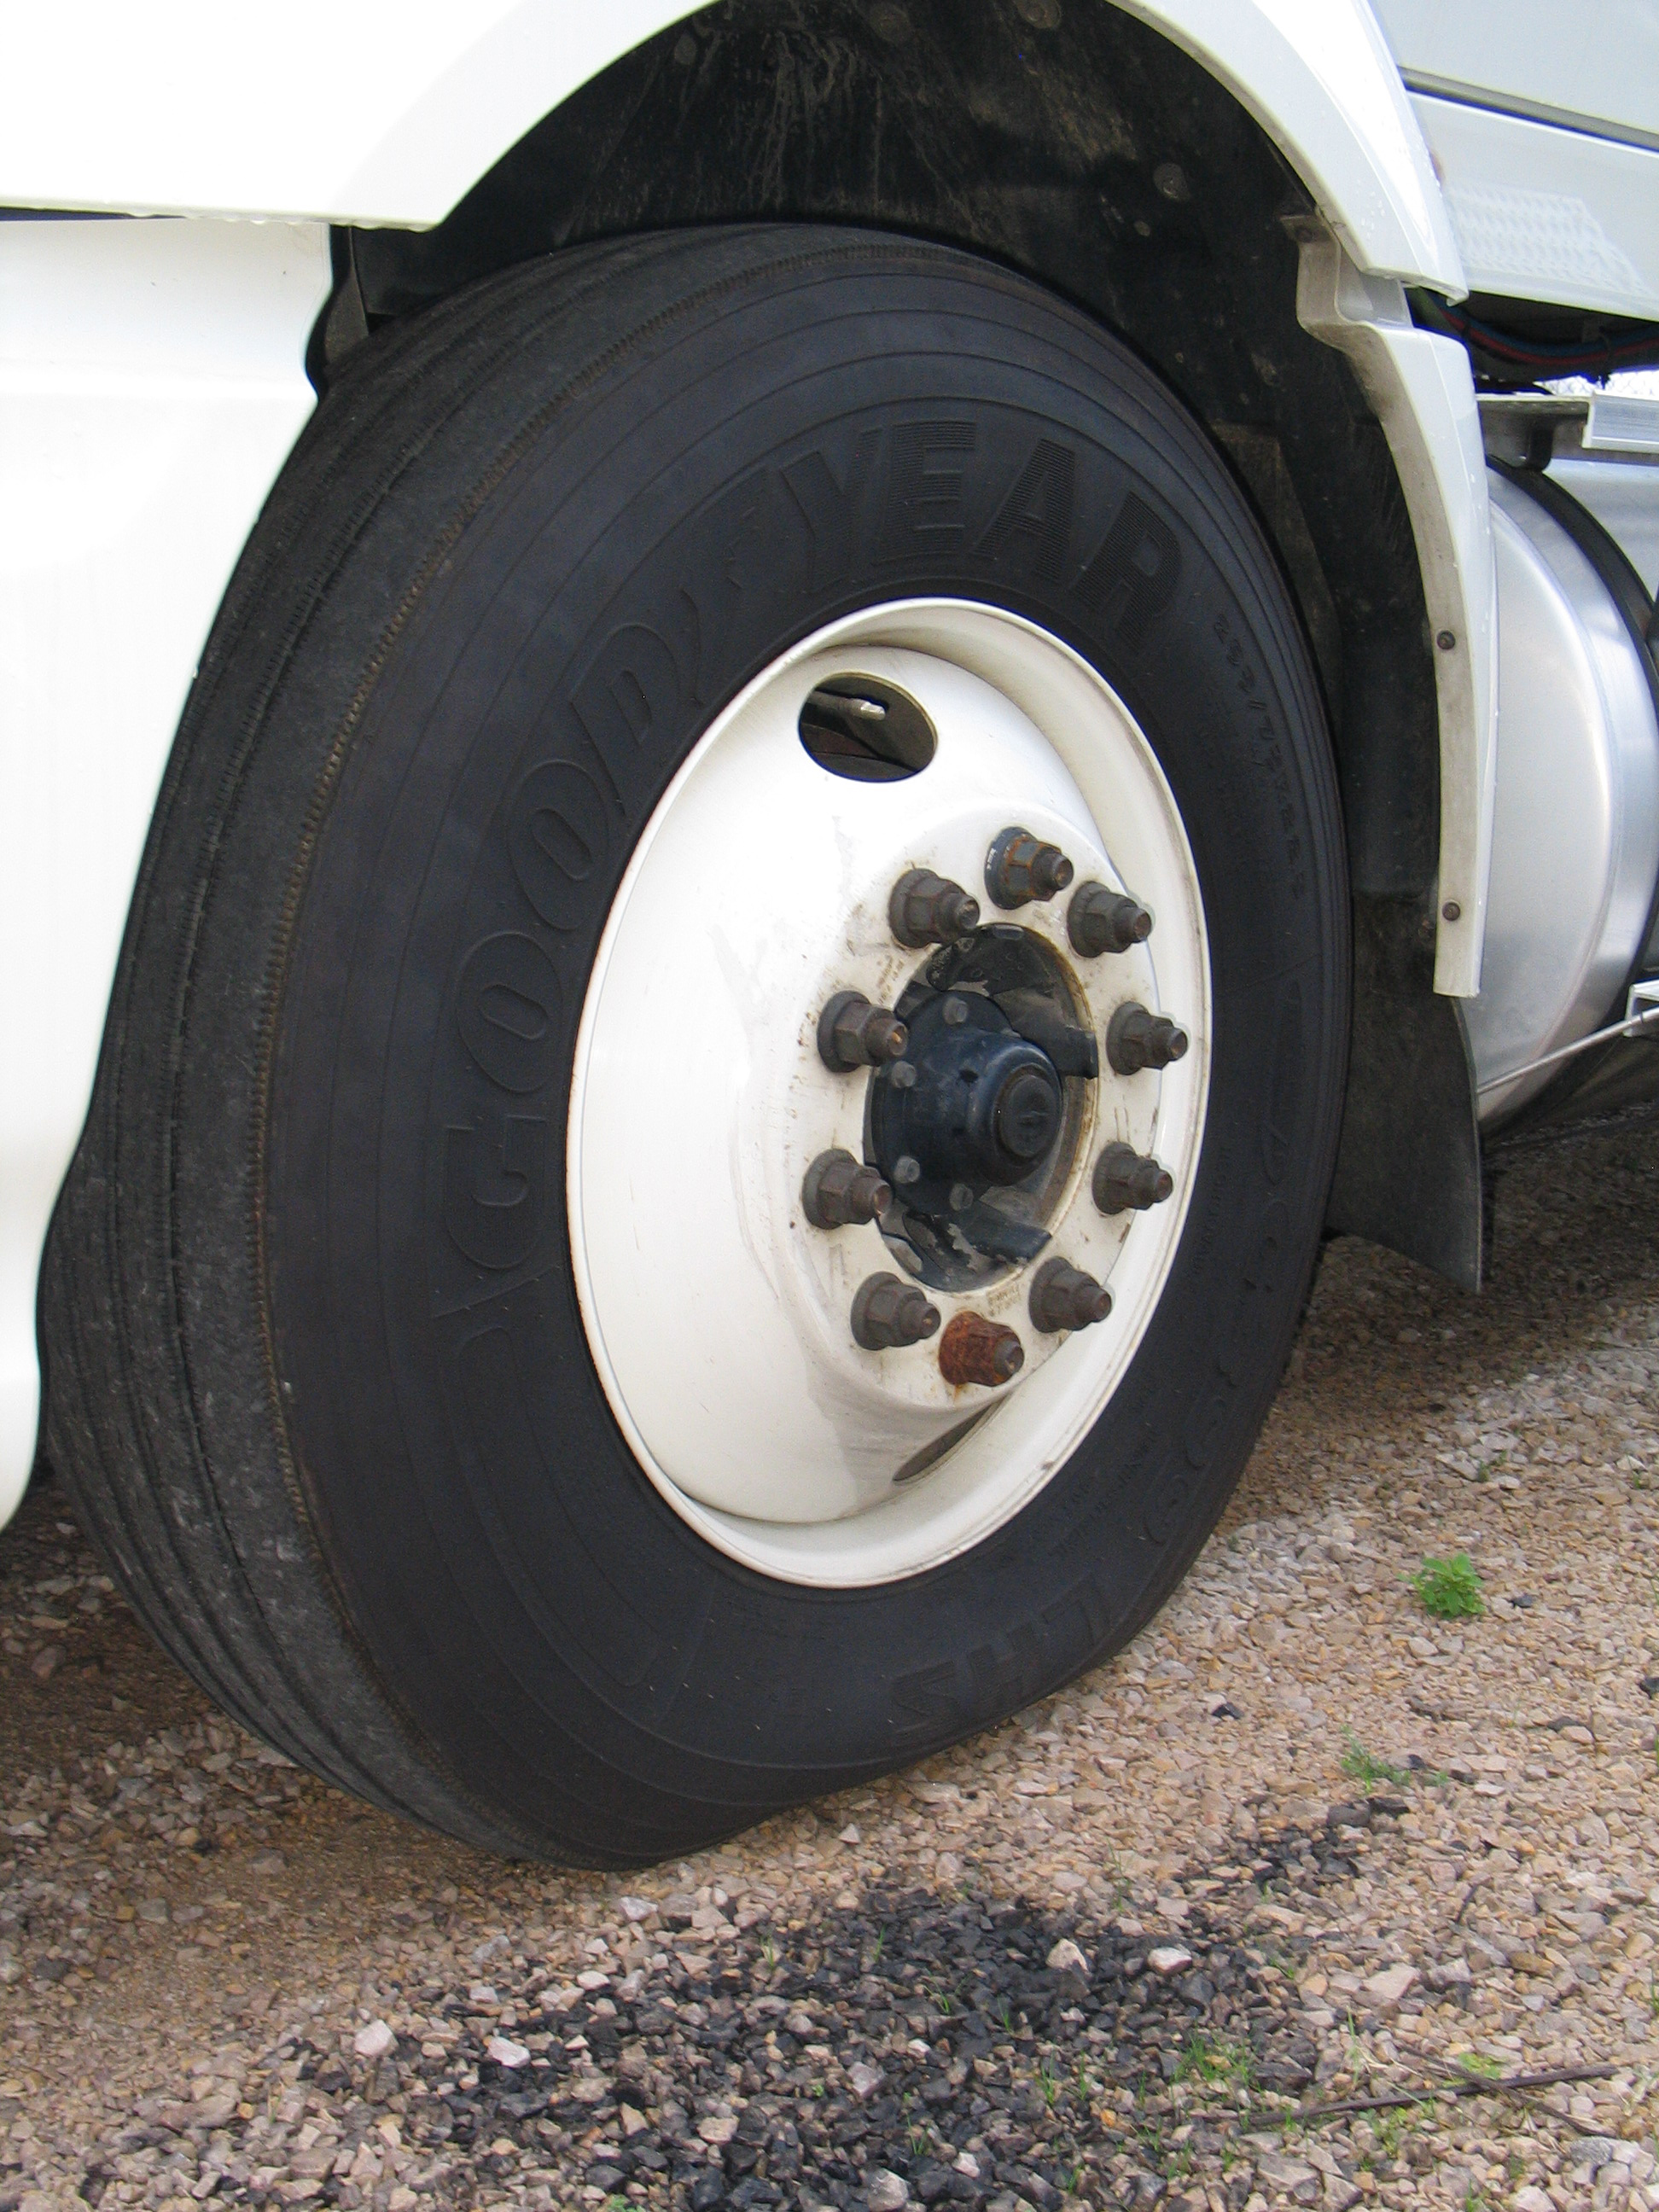 What Exactly Constitutes an Underinflated Truck Tire?